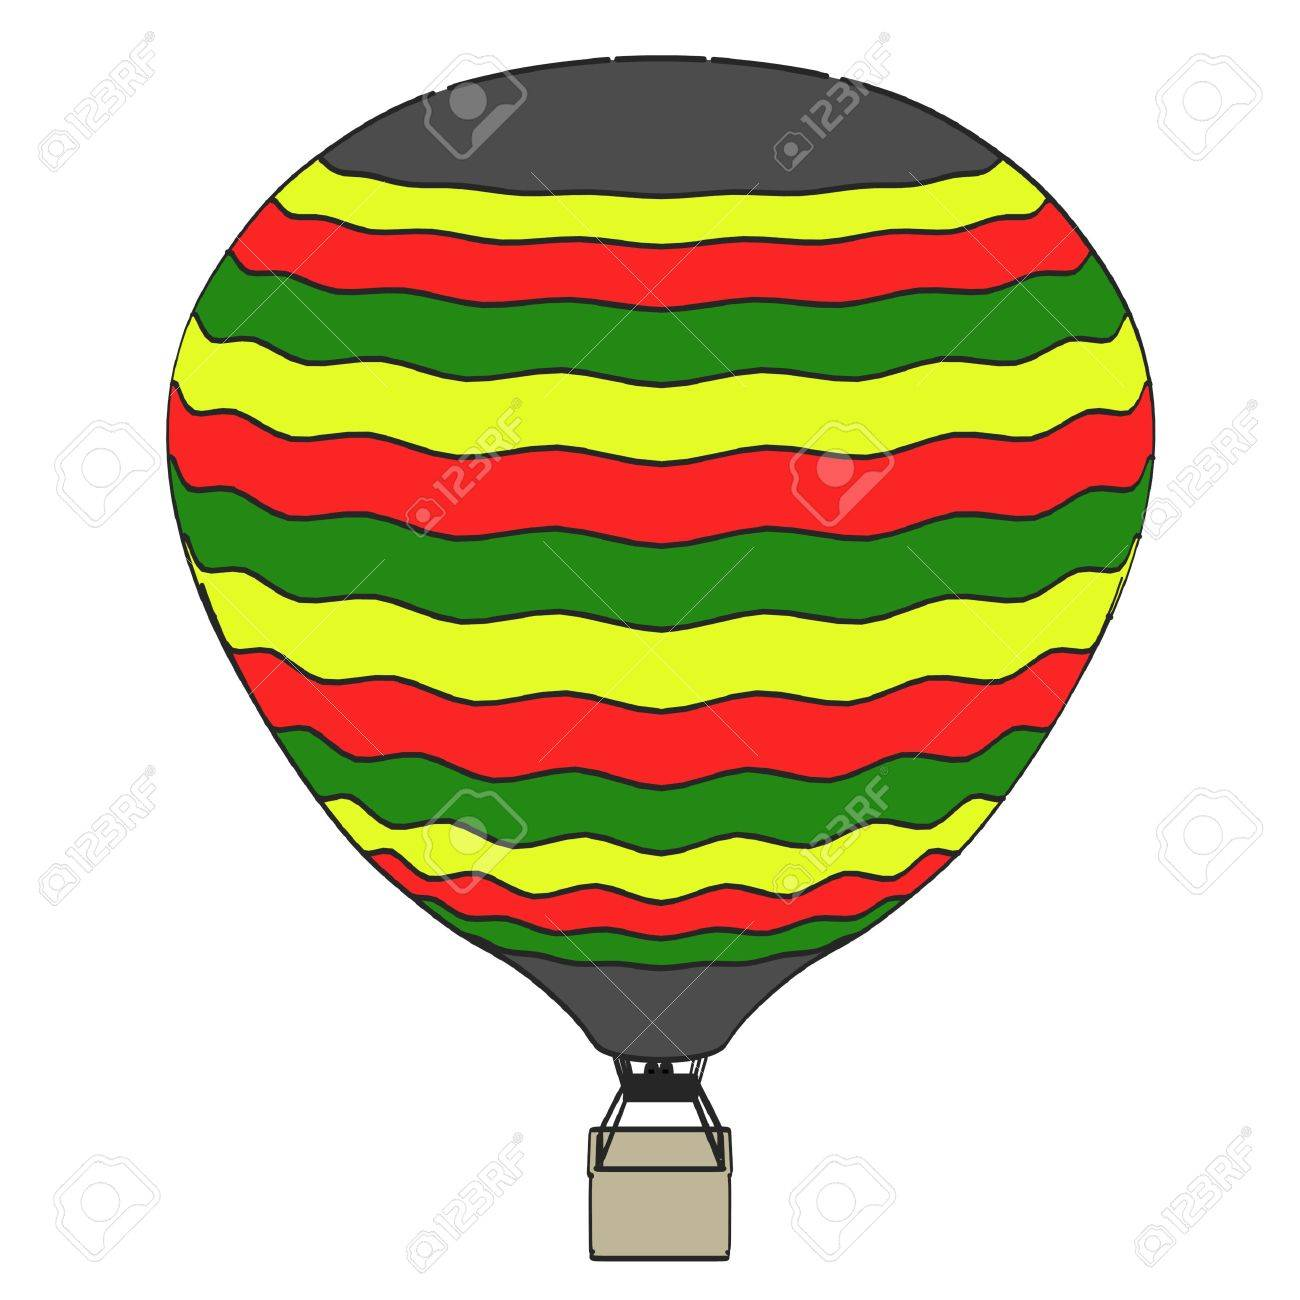 1300x1300 Cartoon Image Of Hot Air Balloon Stock Photo, Picture And Royalty